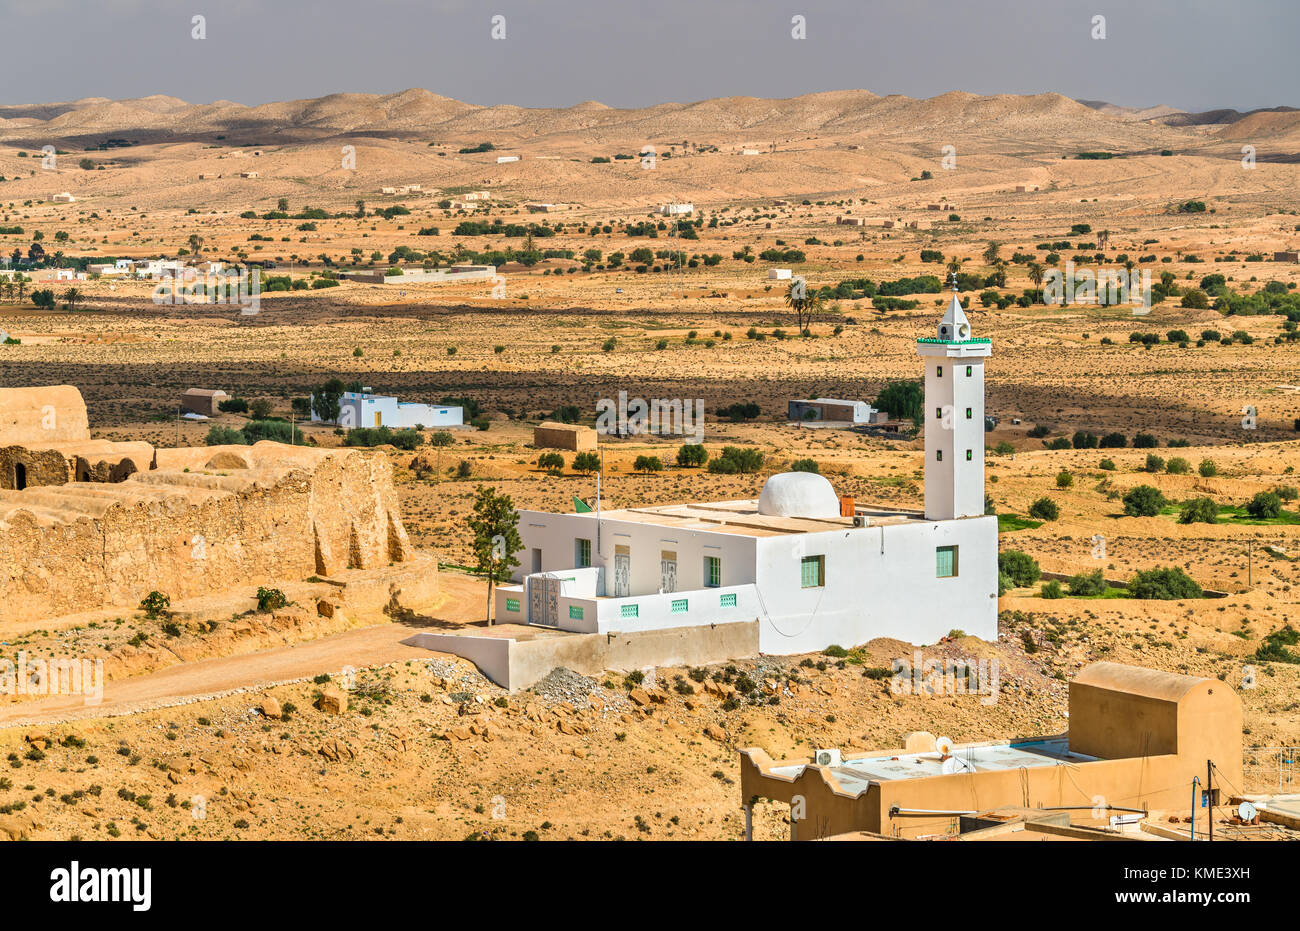 Mosque in Ksour Jlidet, South Tunisia Stock Photo